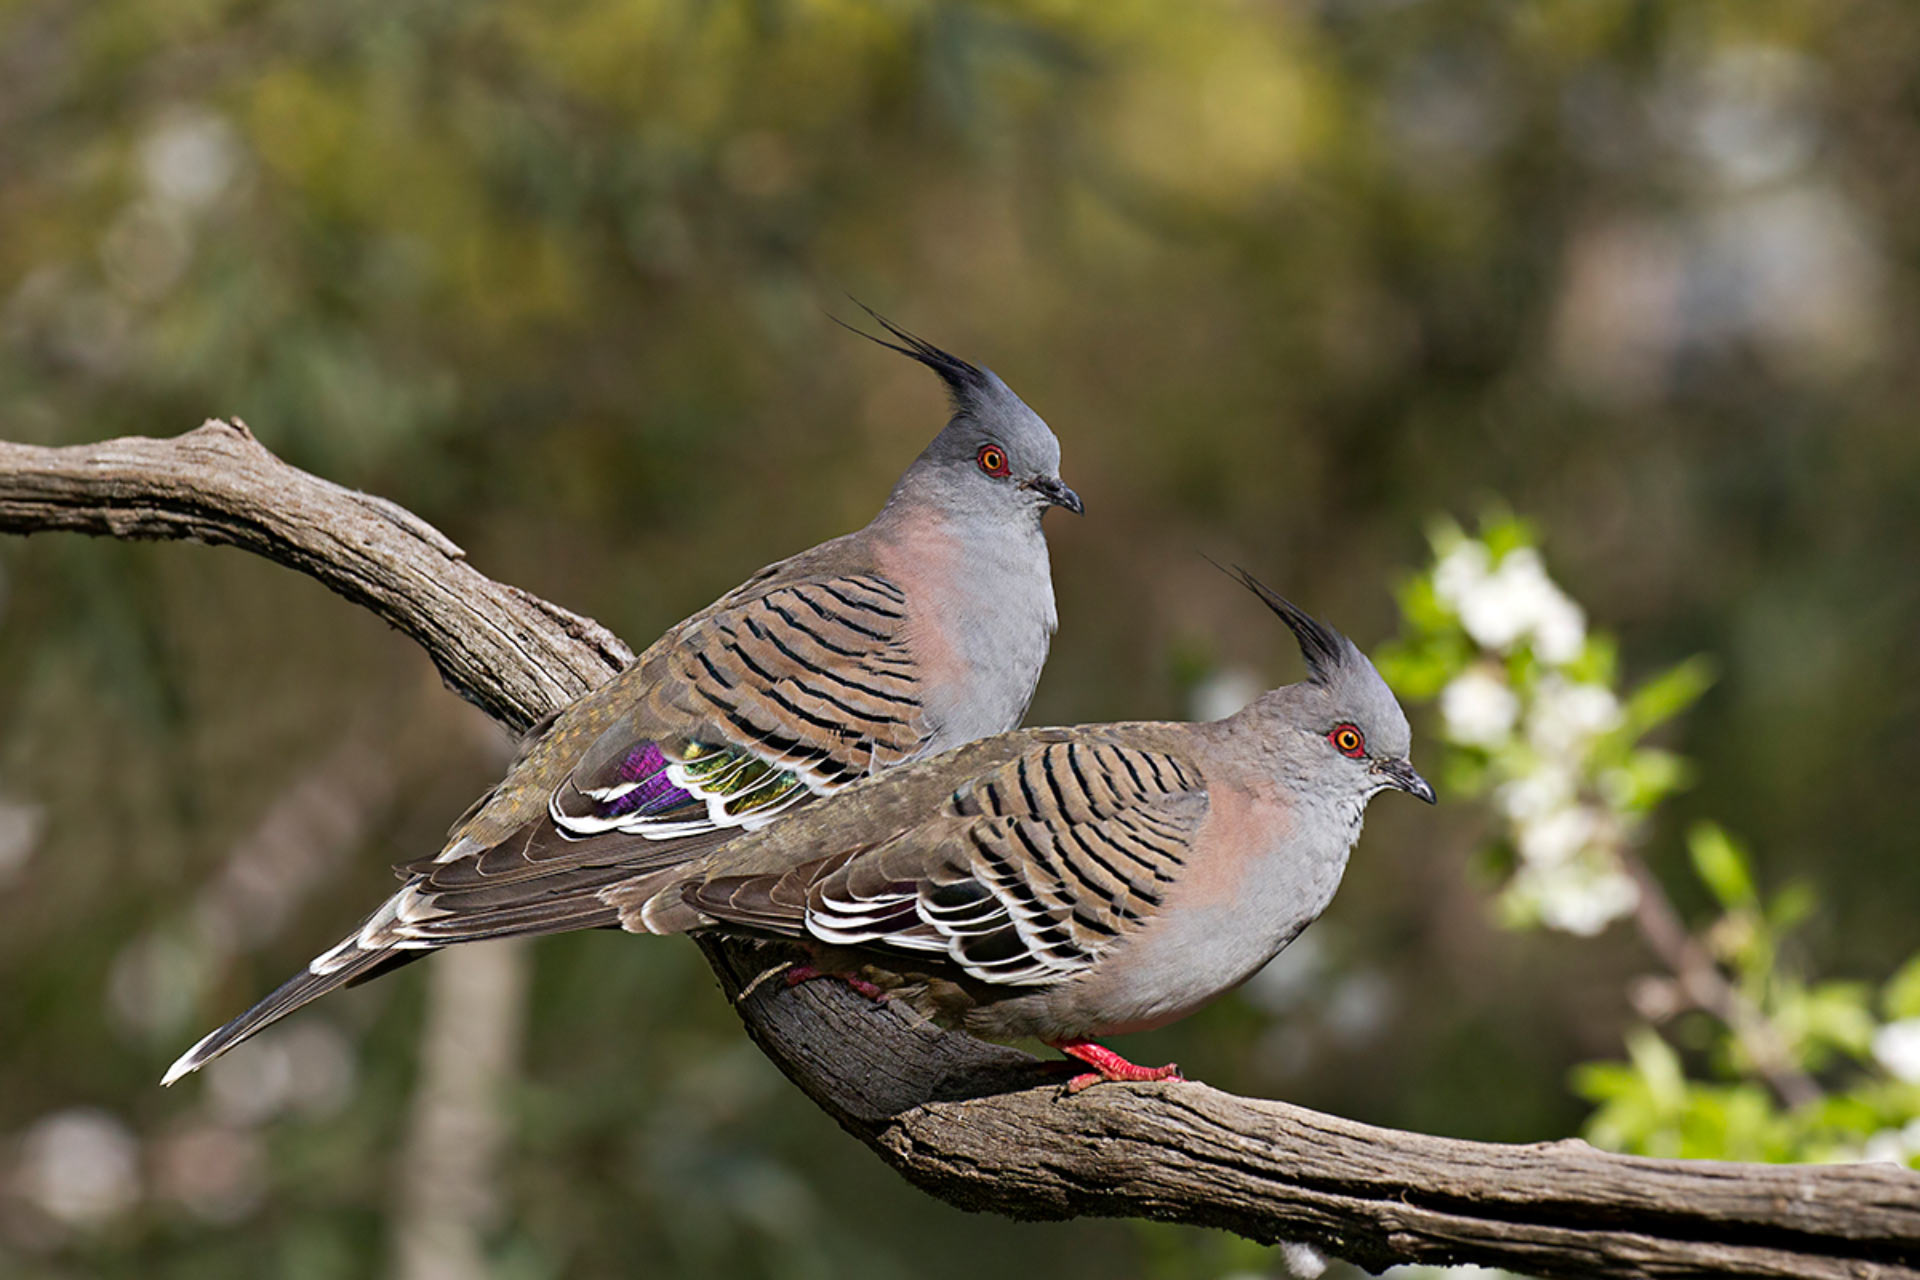 Crested Pigeons Use Specially Modified Wing Feathers To